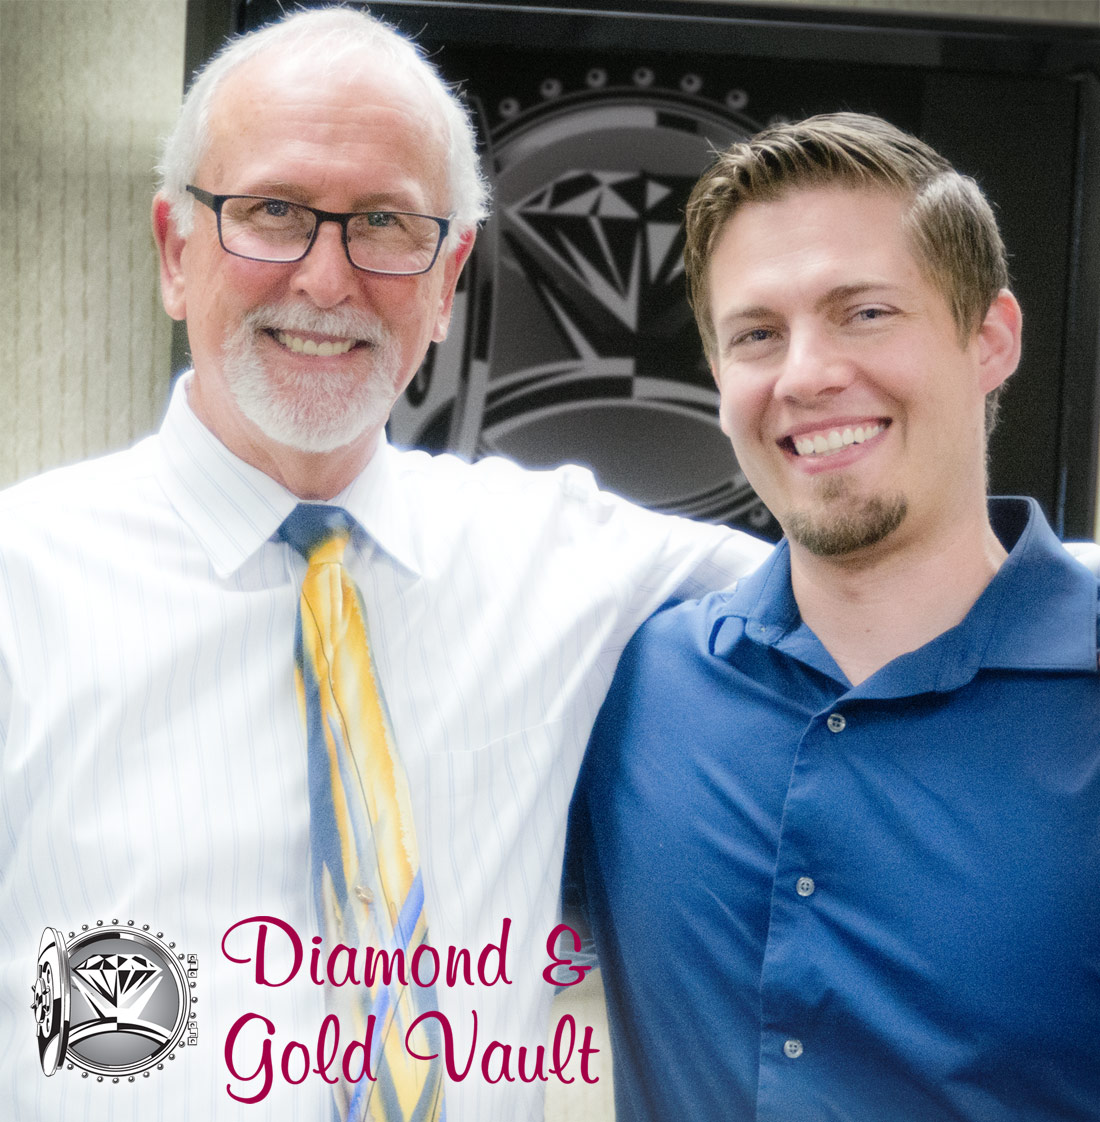 Gene from Diamond and Gold Vault with Angelo from Arden Jewelers